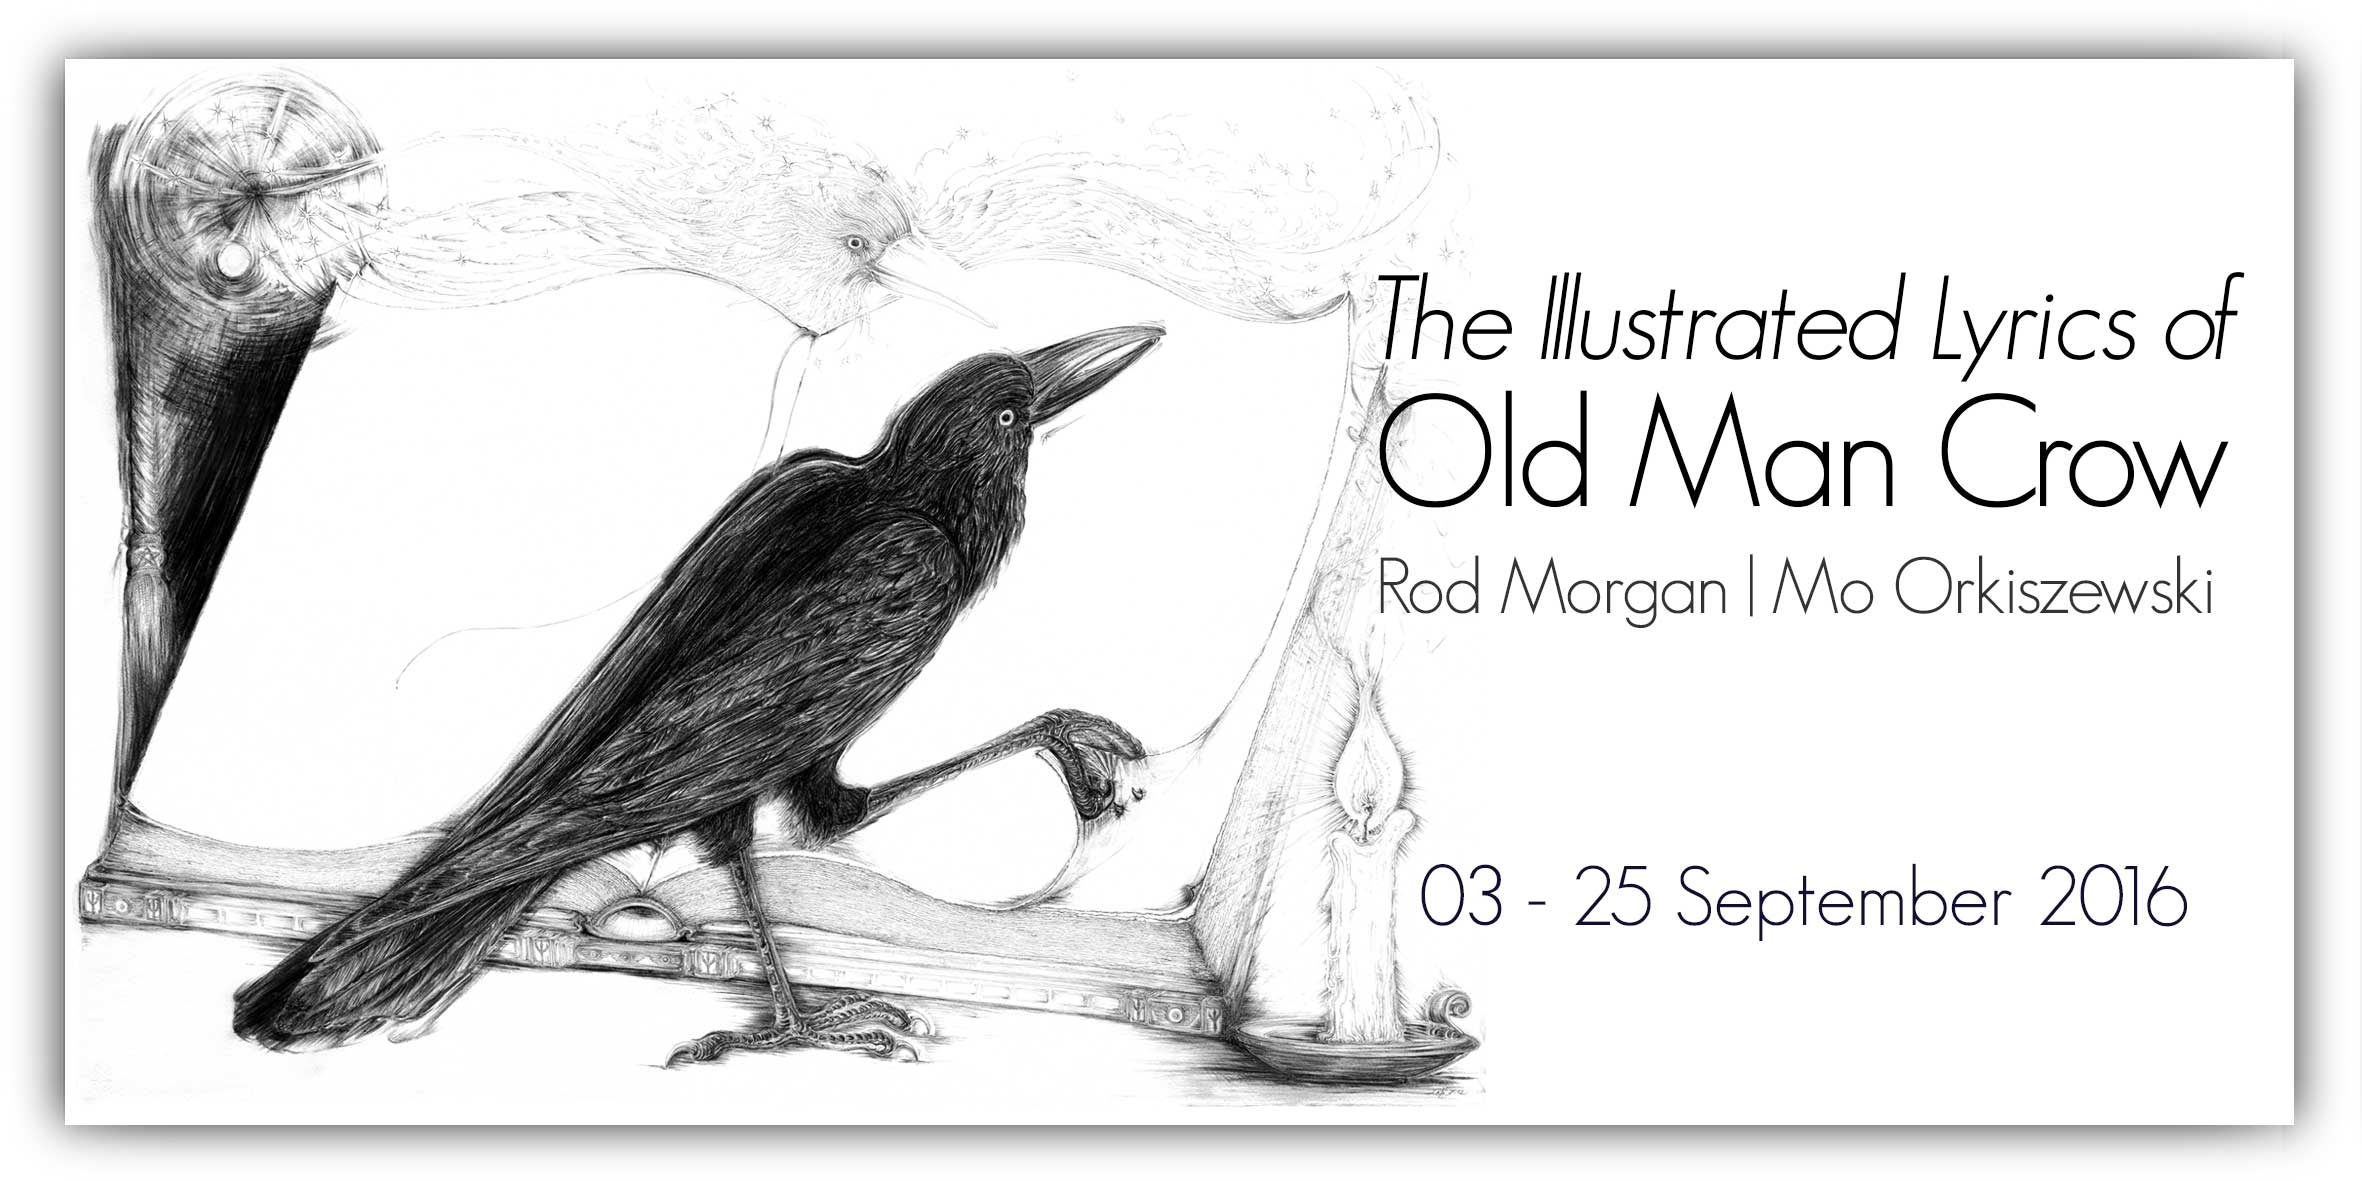 View Exhibition at Artsite Gallery, 03- 25 September 2016: The Illustrated Lyrics of Old Man Crow - Mo Orkiszewski and Rod Morgan